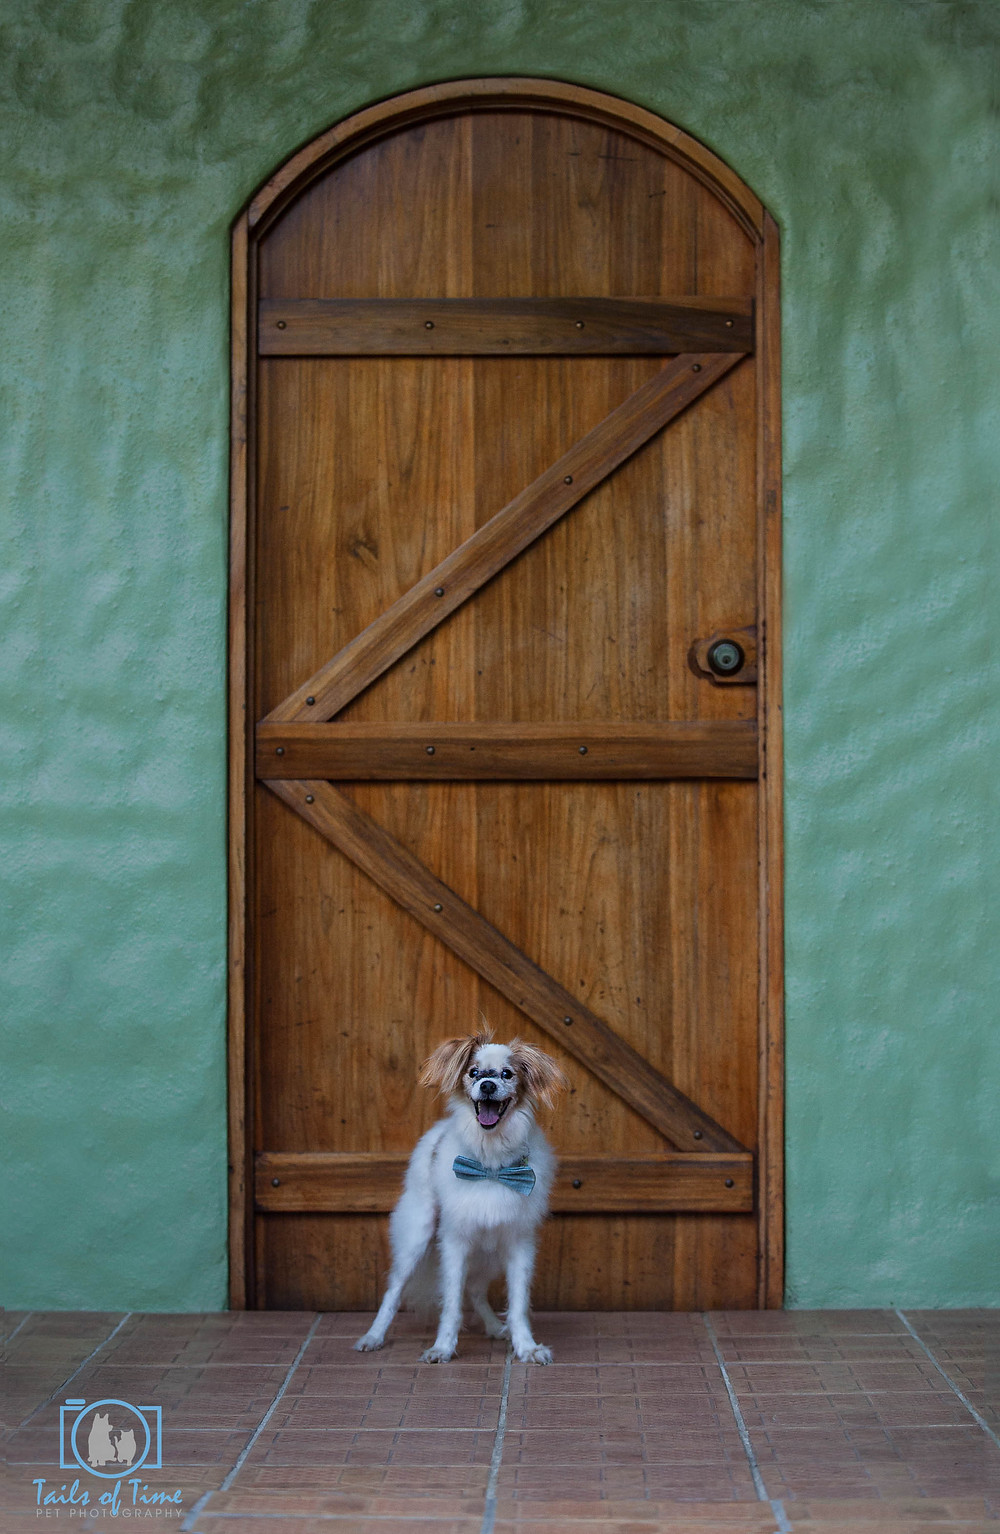 Tails of Time Pet Photography goes International to Costa Rica!